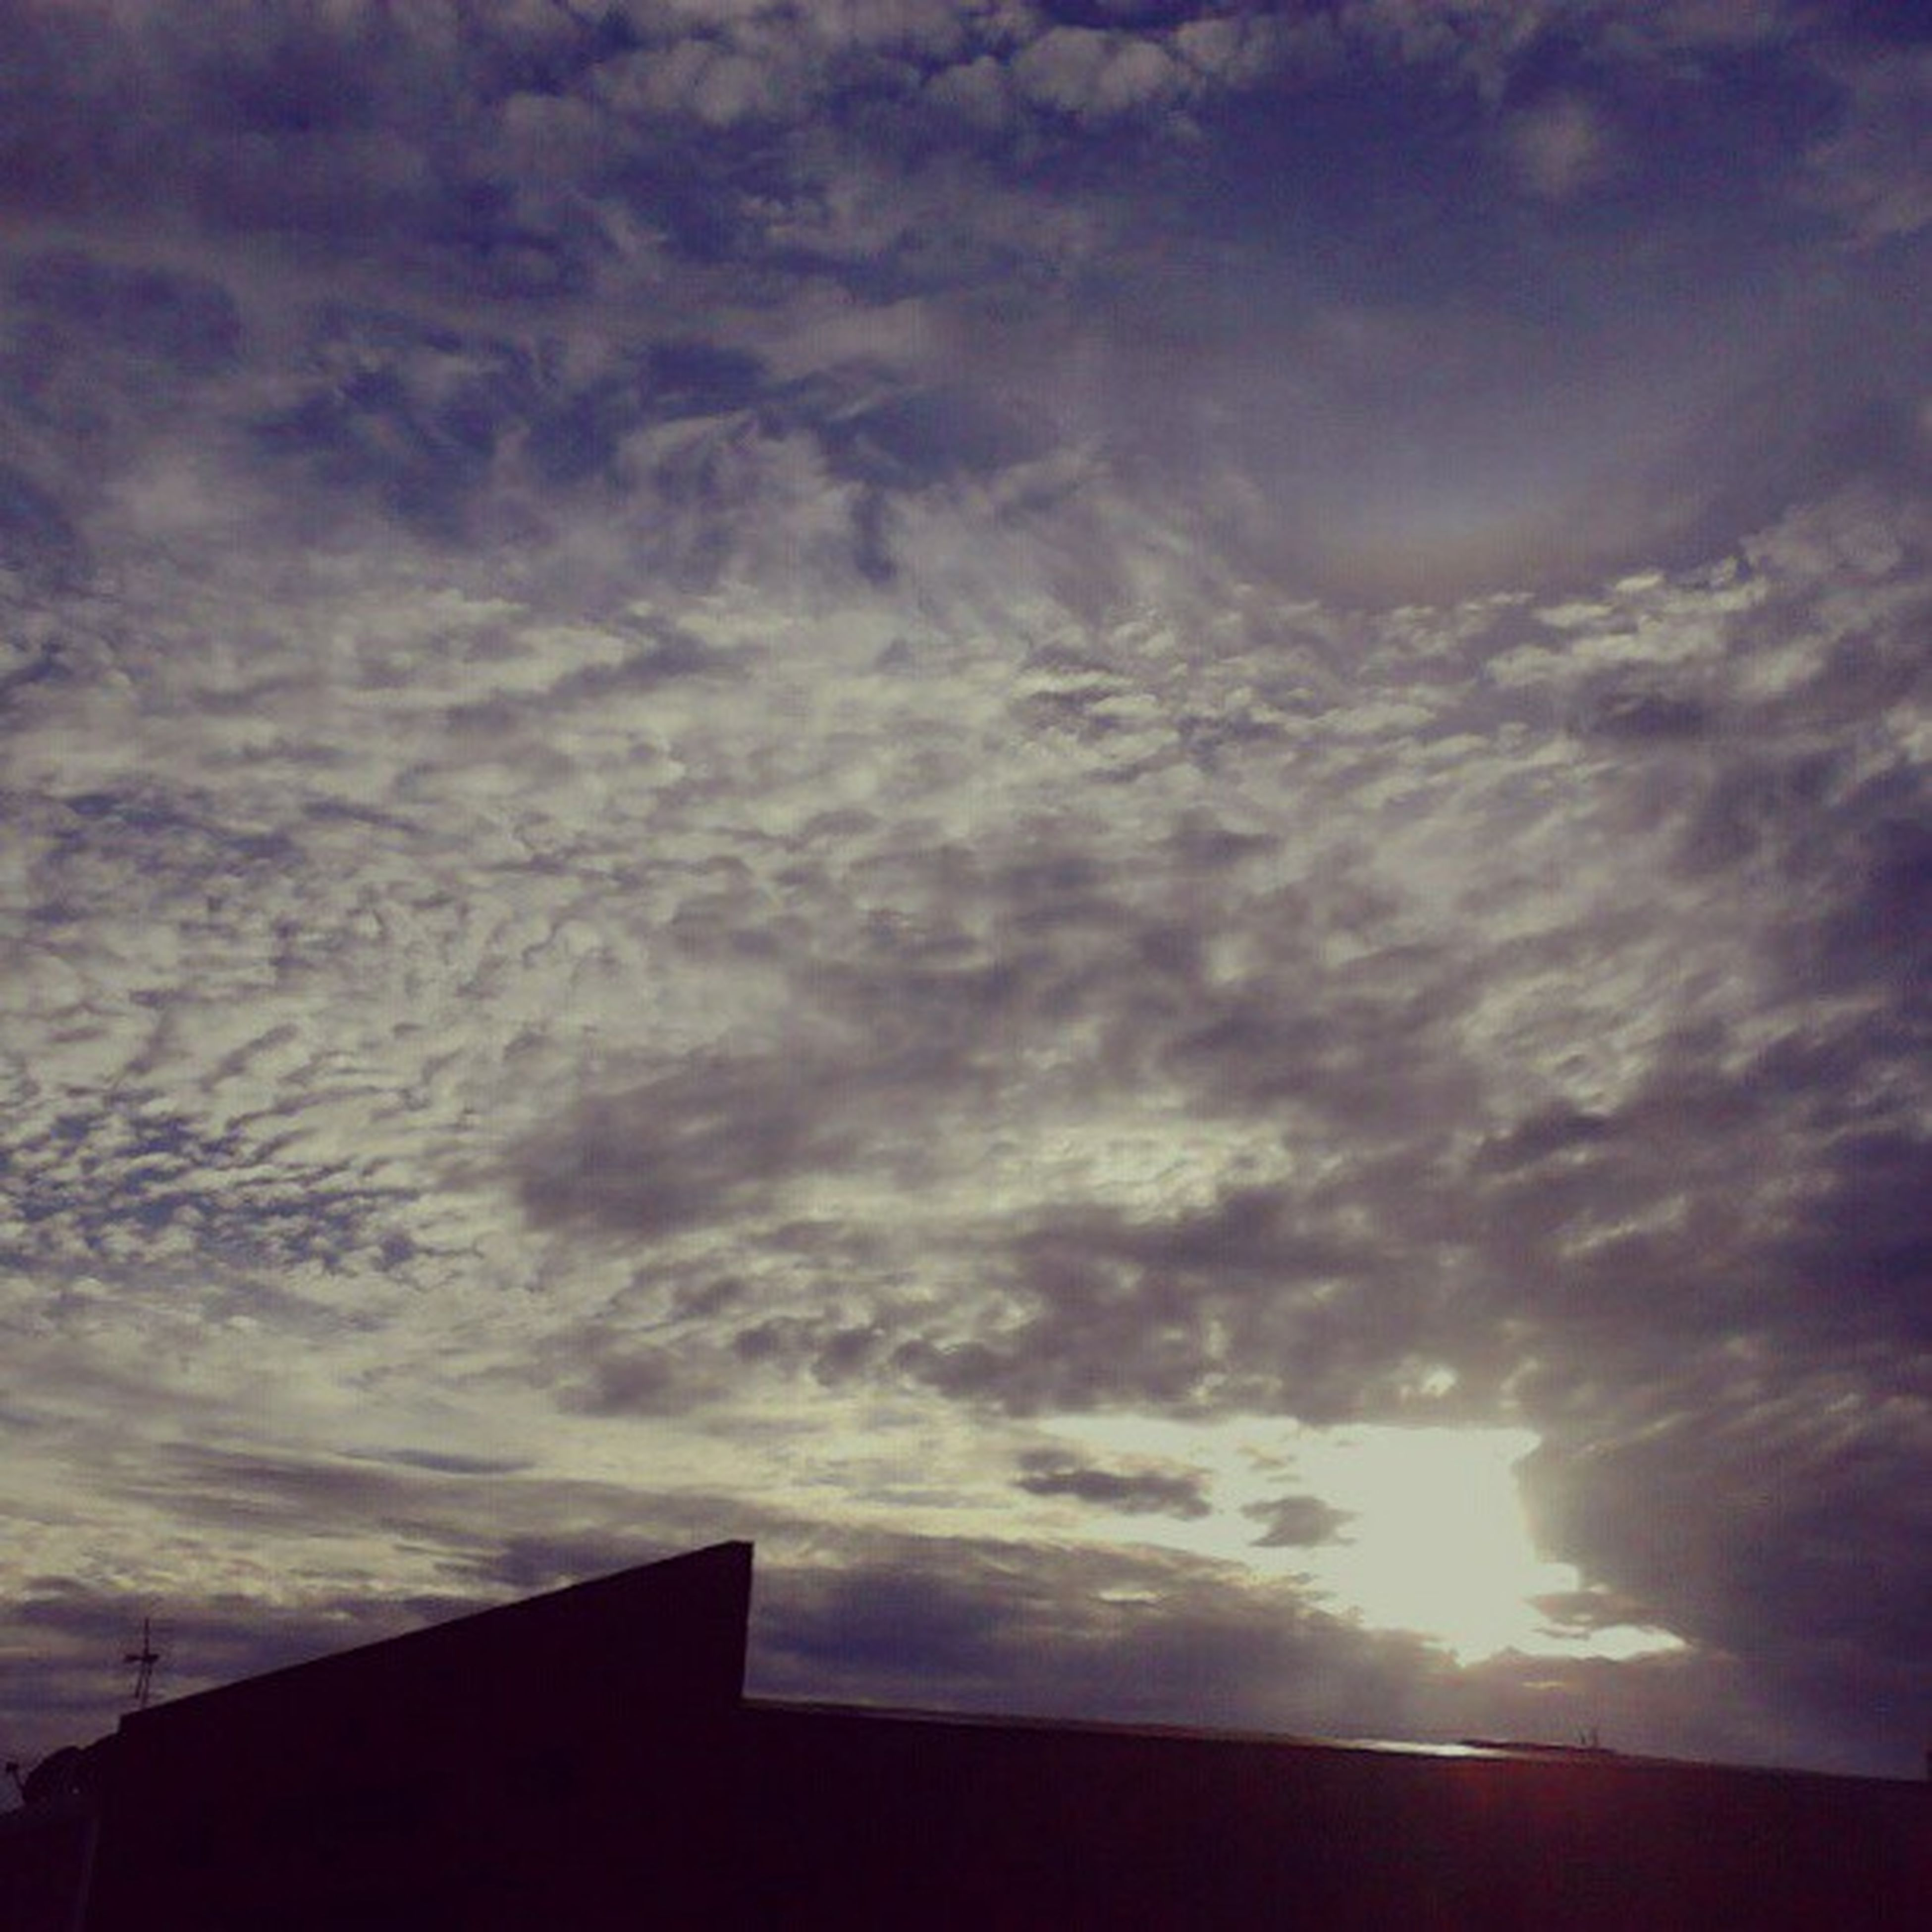 sky, building exterior, architecture, cloud - sky, built structure, low angle view, sunset, cloudy, silhouette, cloud, house, weather, beauty in nature, nature, scenics, high section, overcast, building, outdoors, cloudscape